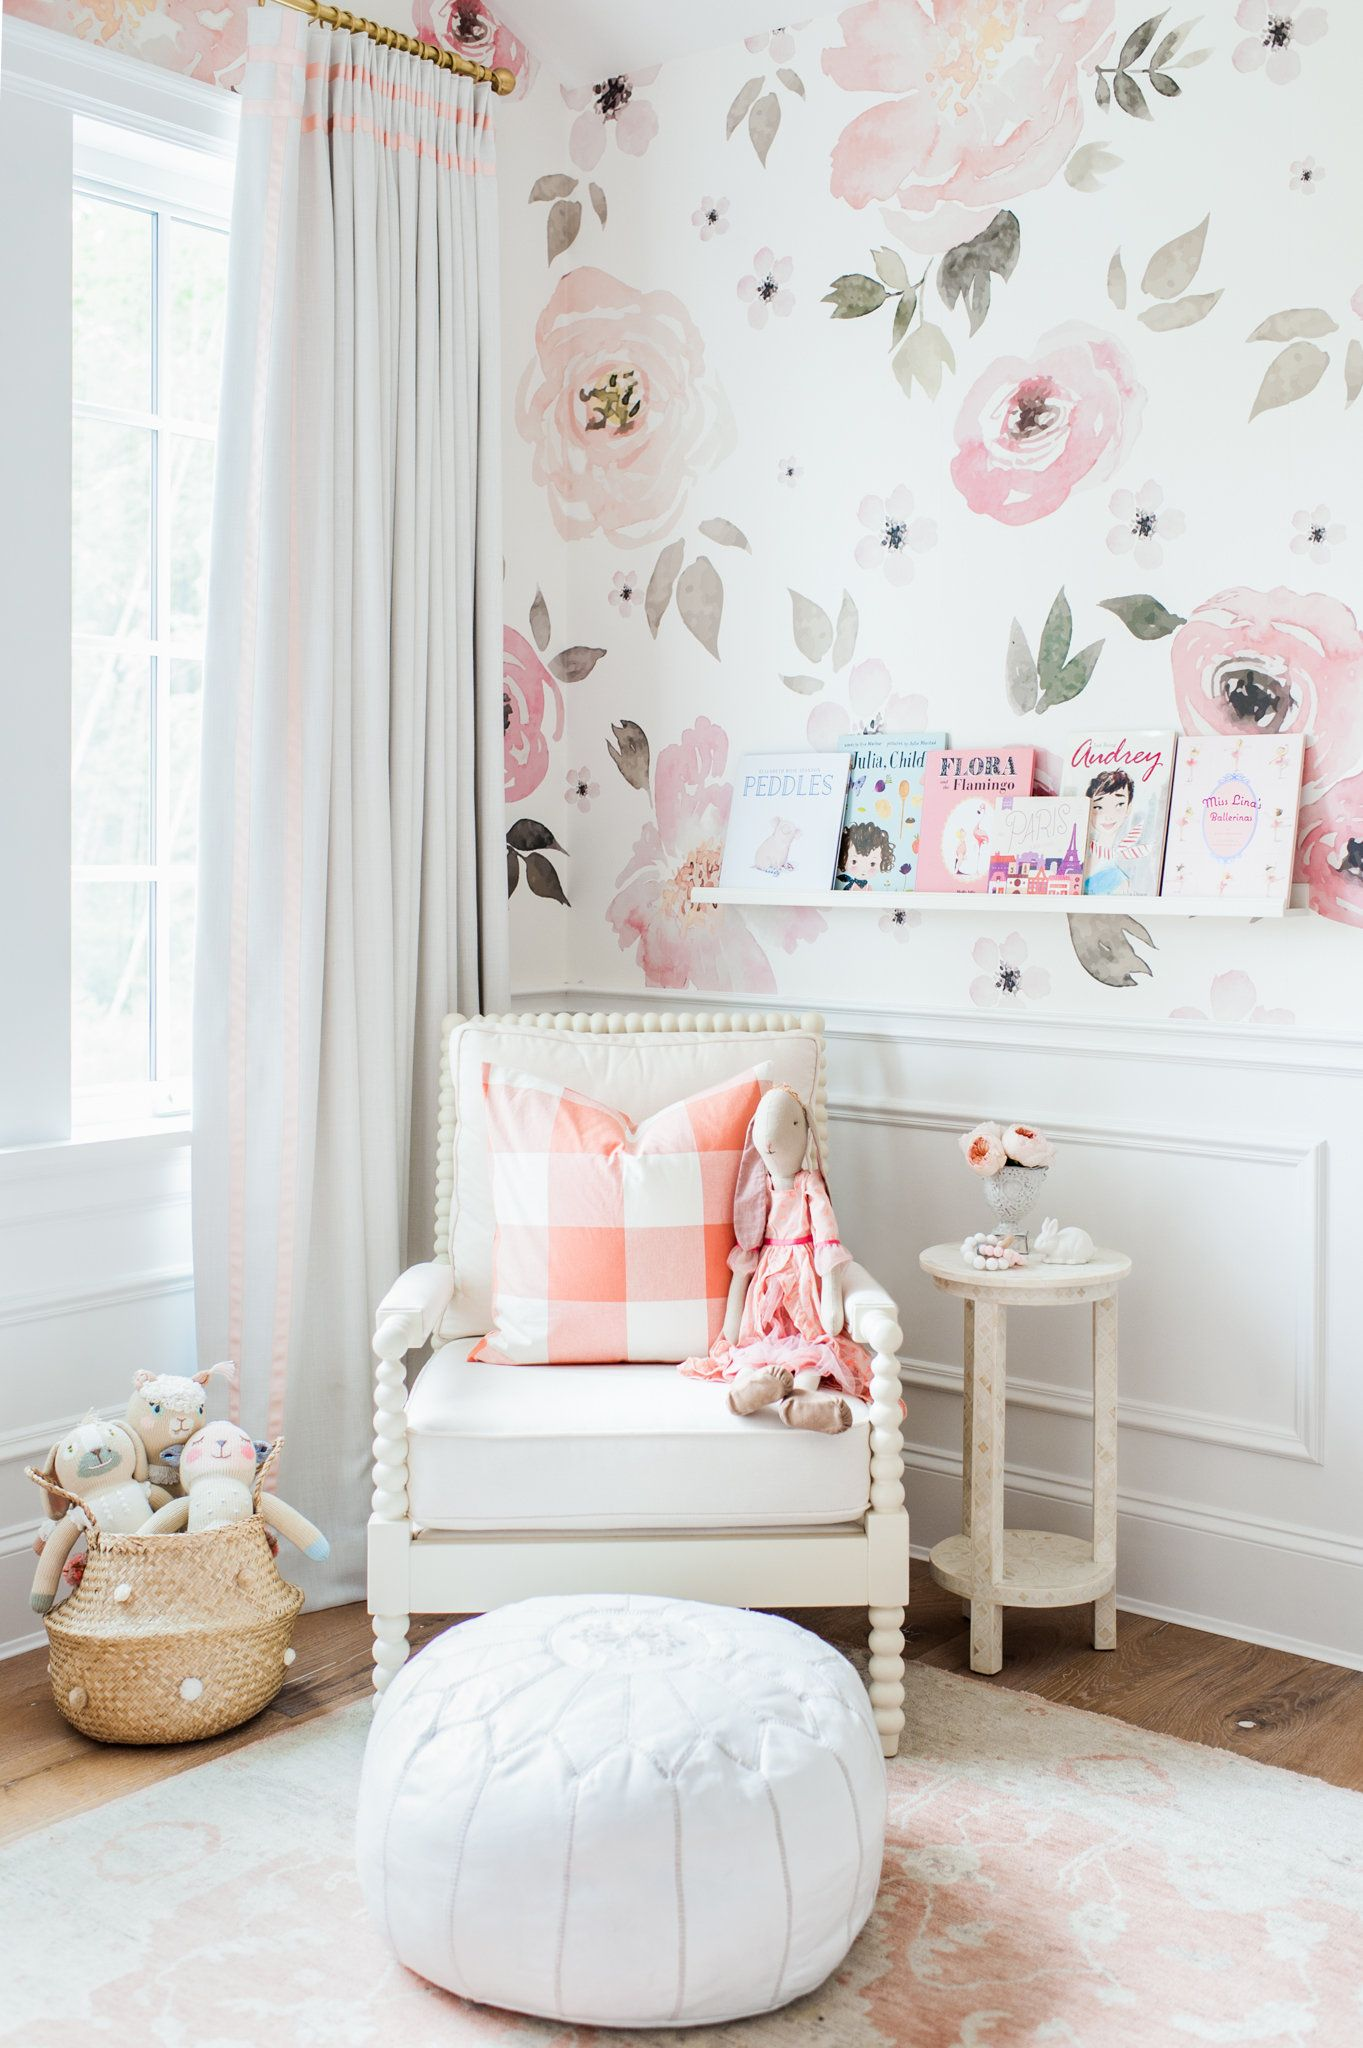 25 Sweet Reading Nook Ideas for Girls | rooms- 4u | Kids room design ...